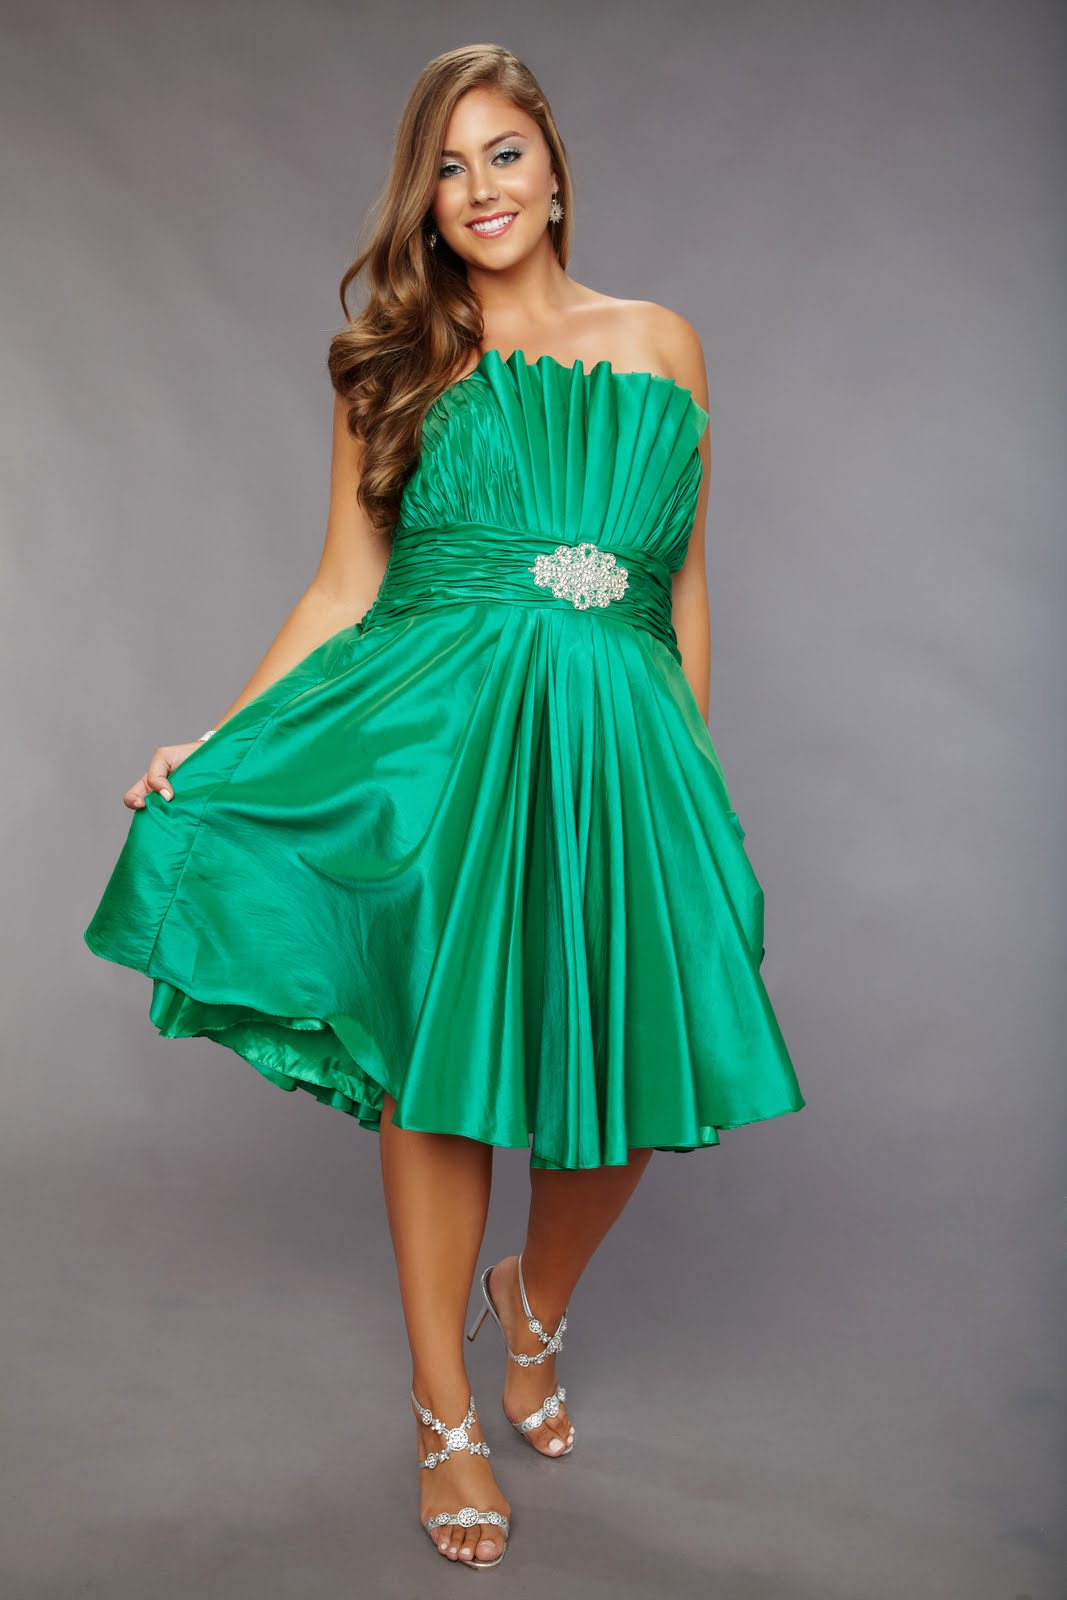 Sydney\'s Closet: Prom Dress Trend #8: Cut it Short